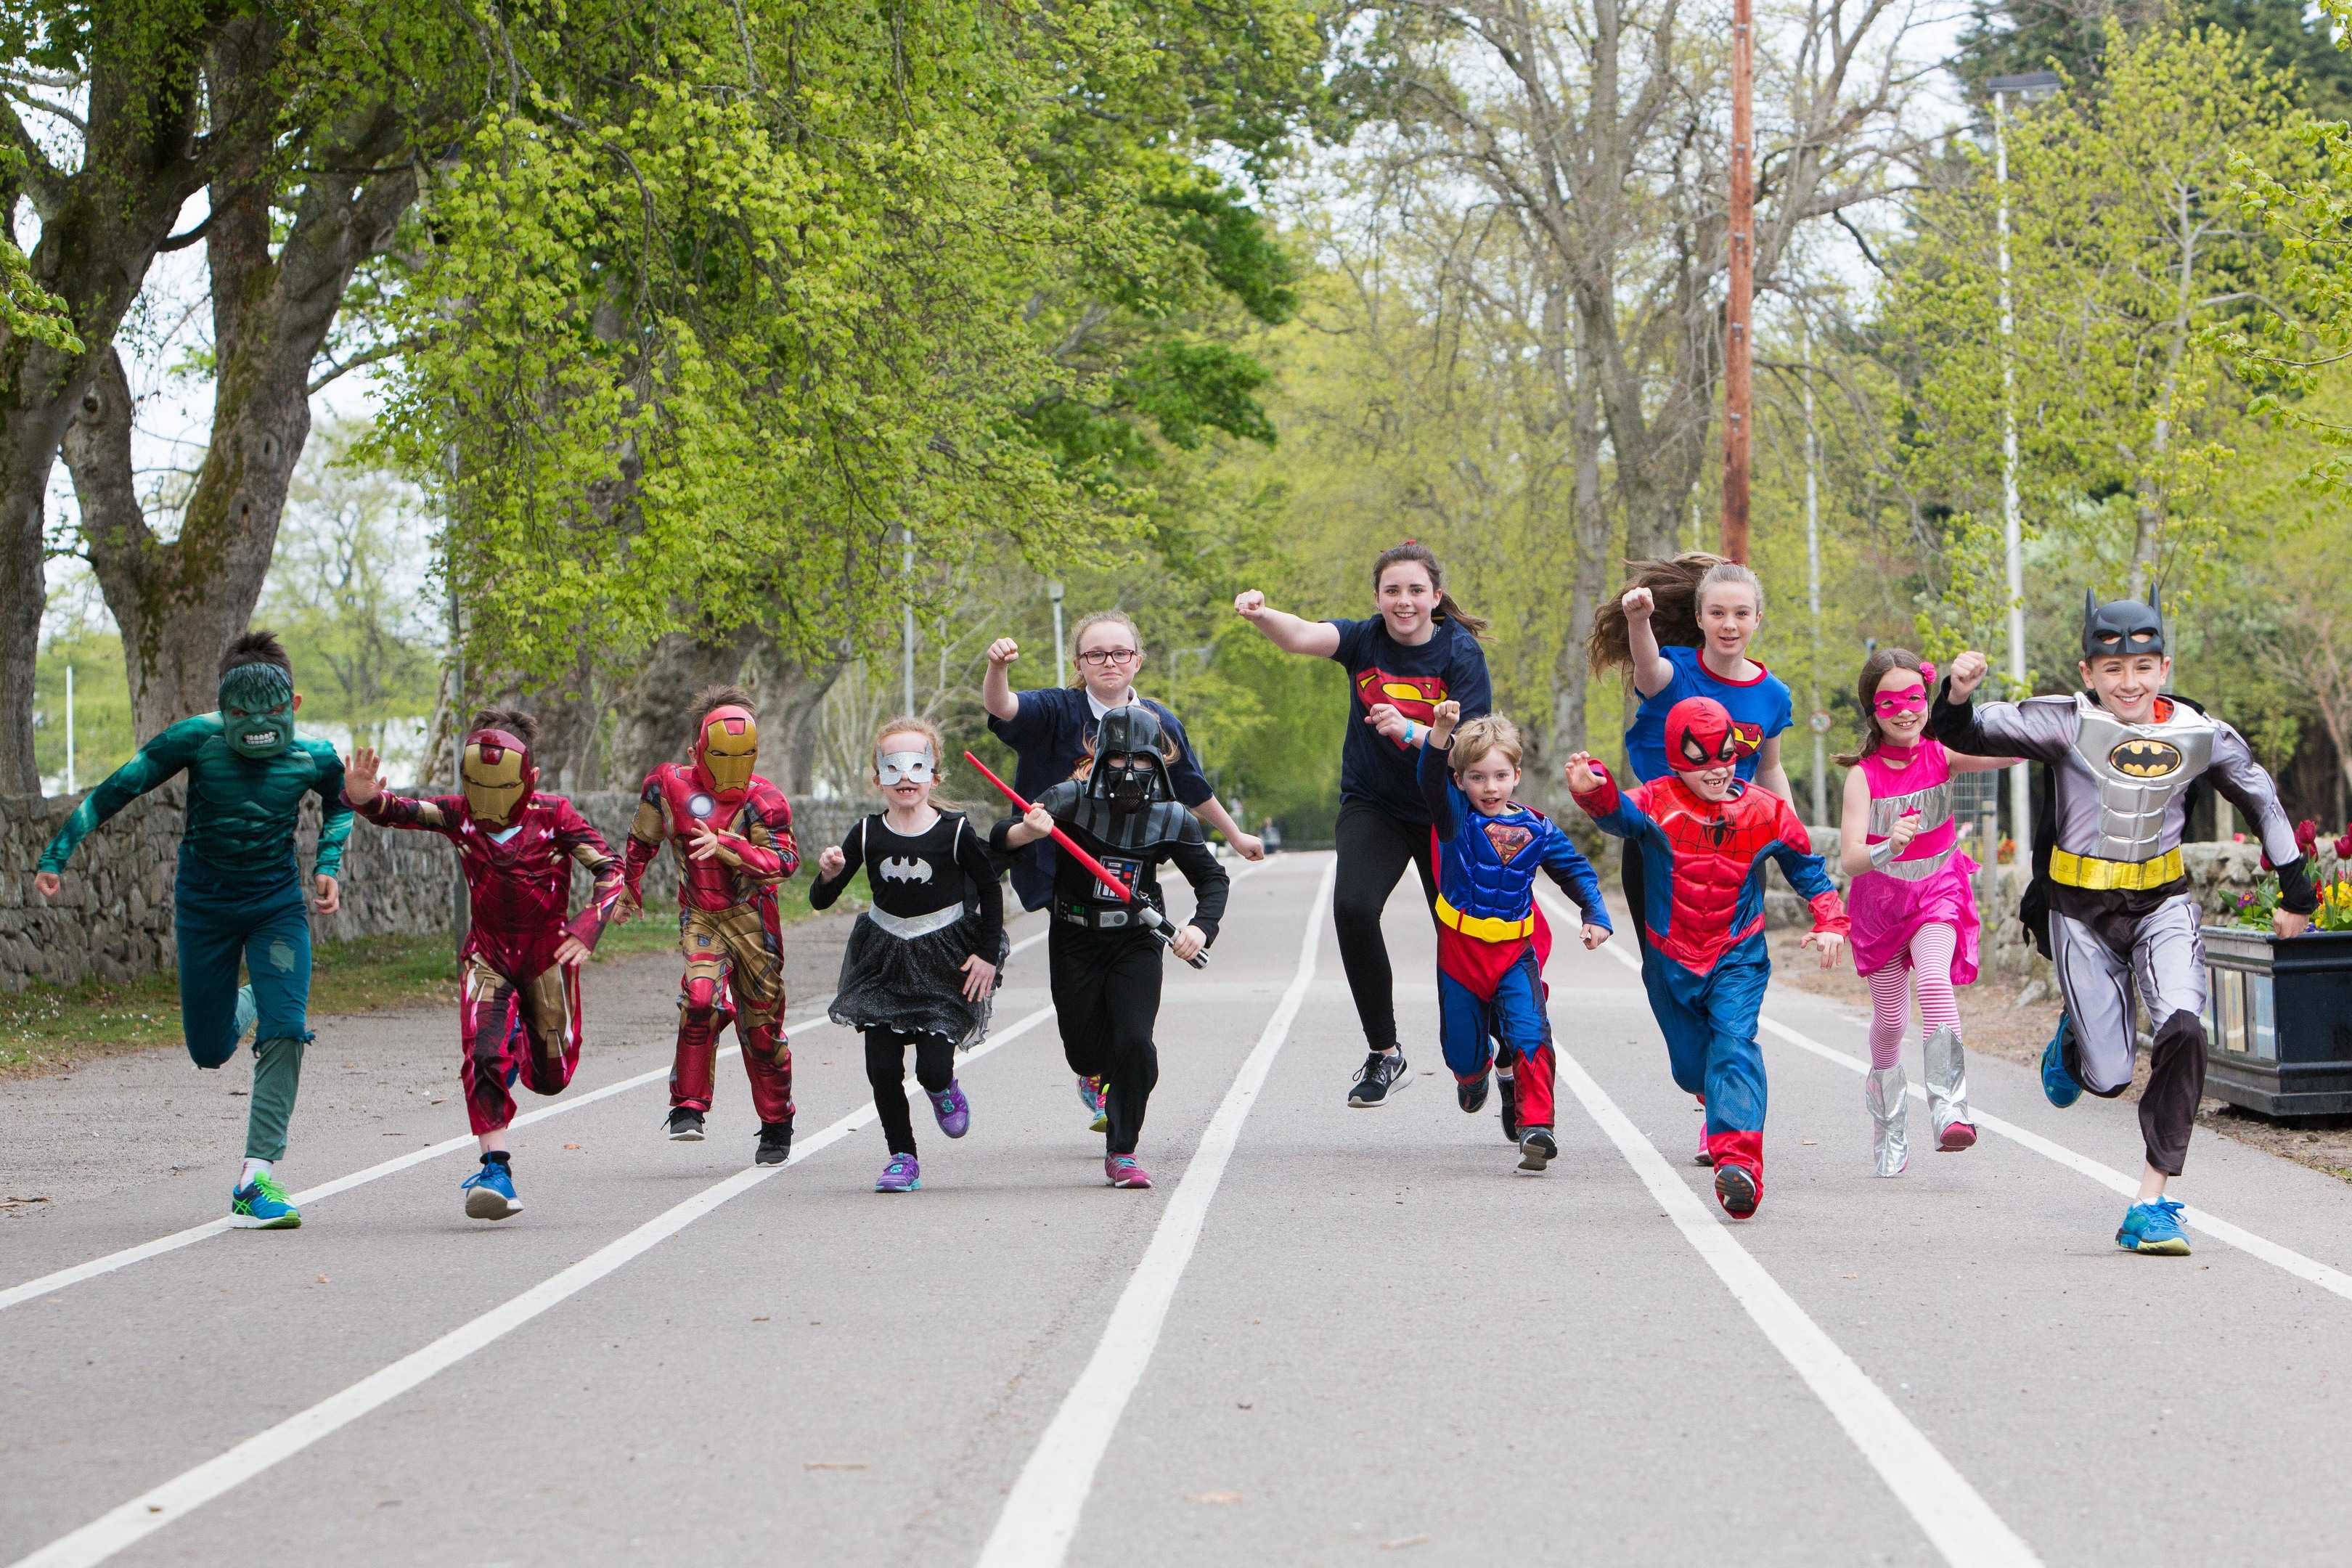 Dandara once again sponsored the Friends of Hazlehead 5k, which had a superhero theme.